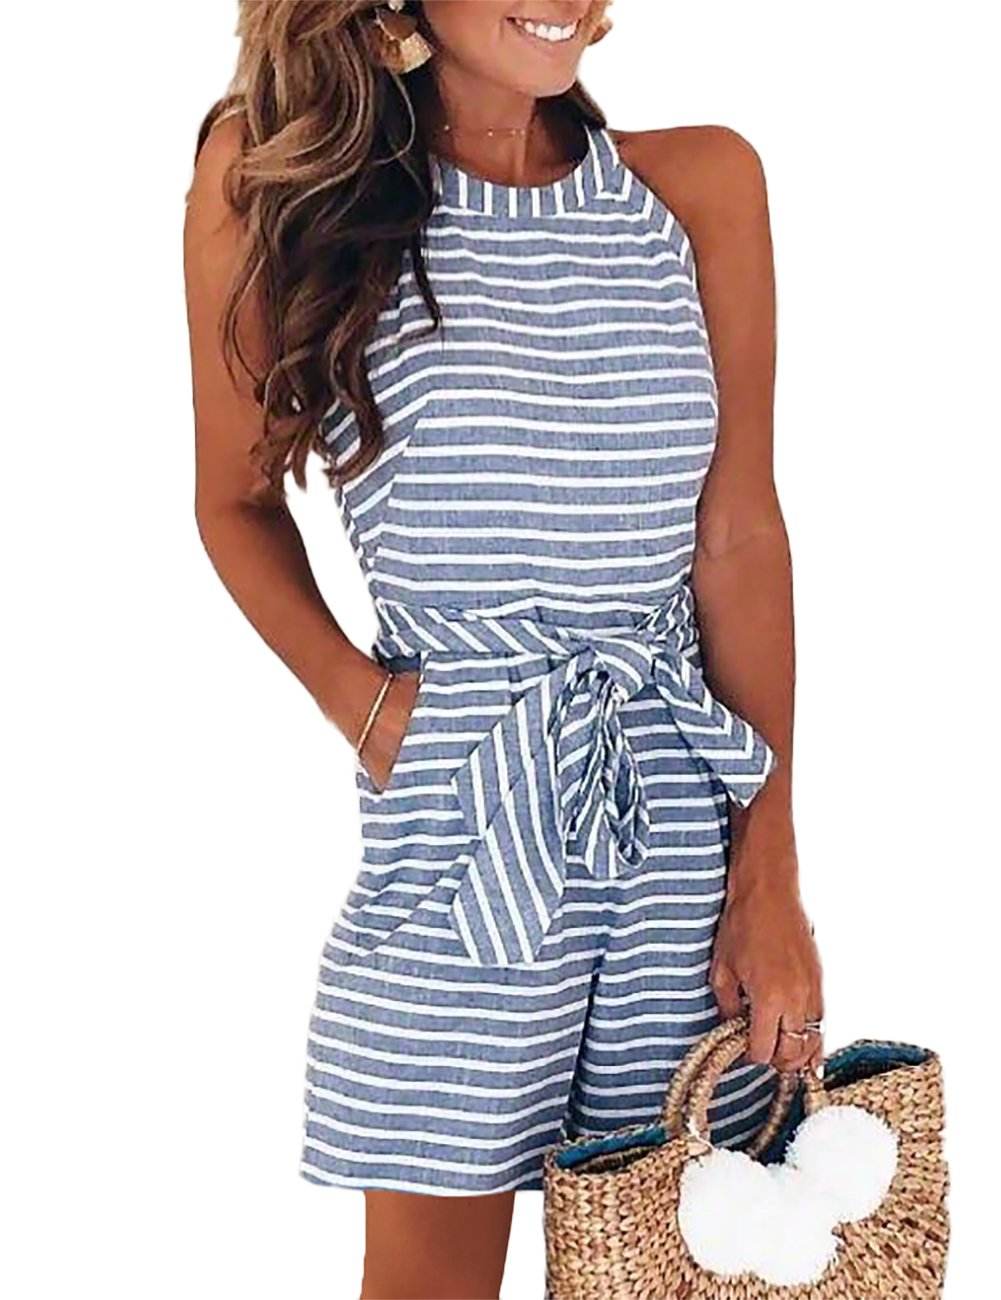 DUBACH Women Casual Striped Sleeveless Short Romper Jumpsuit L Blue